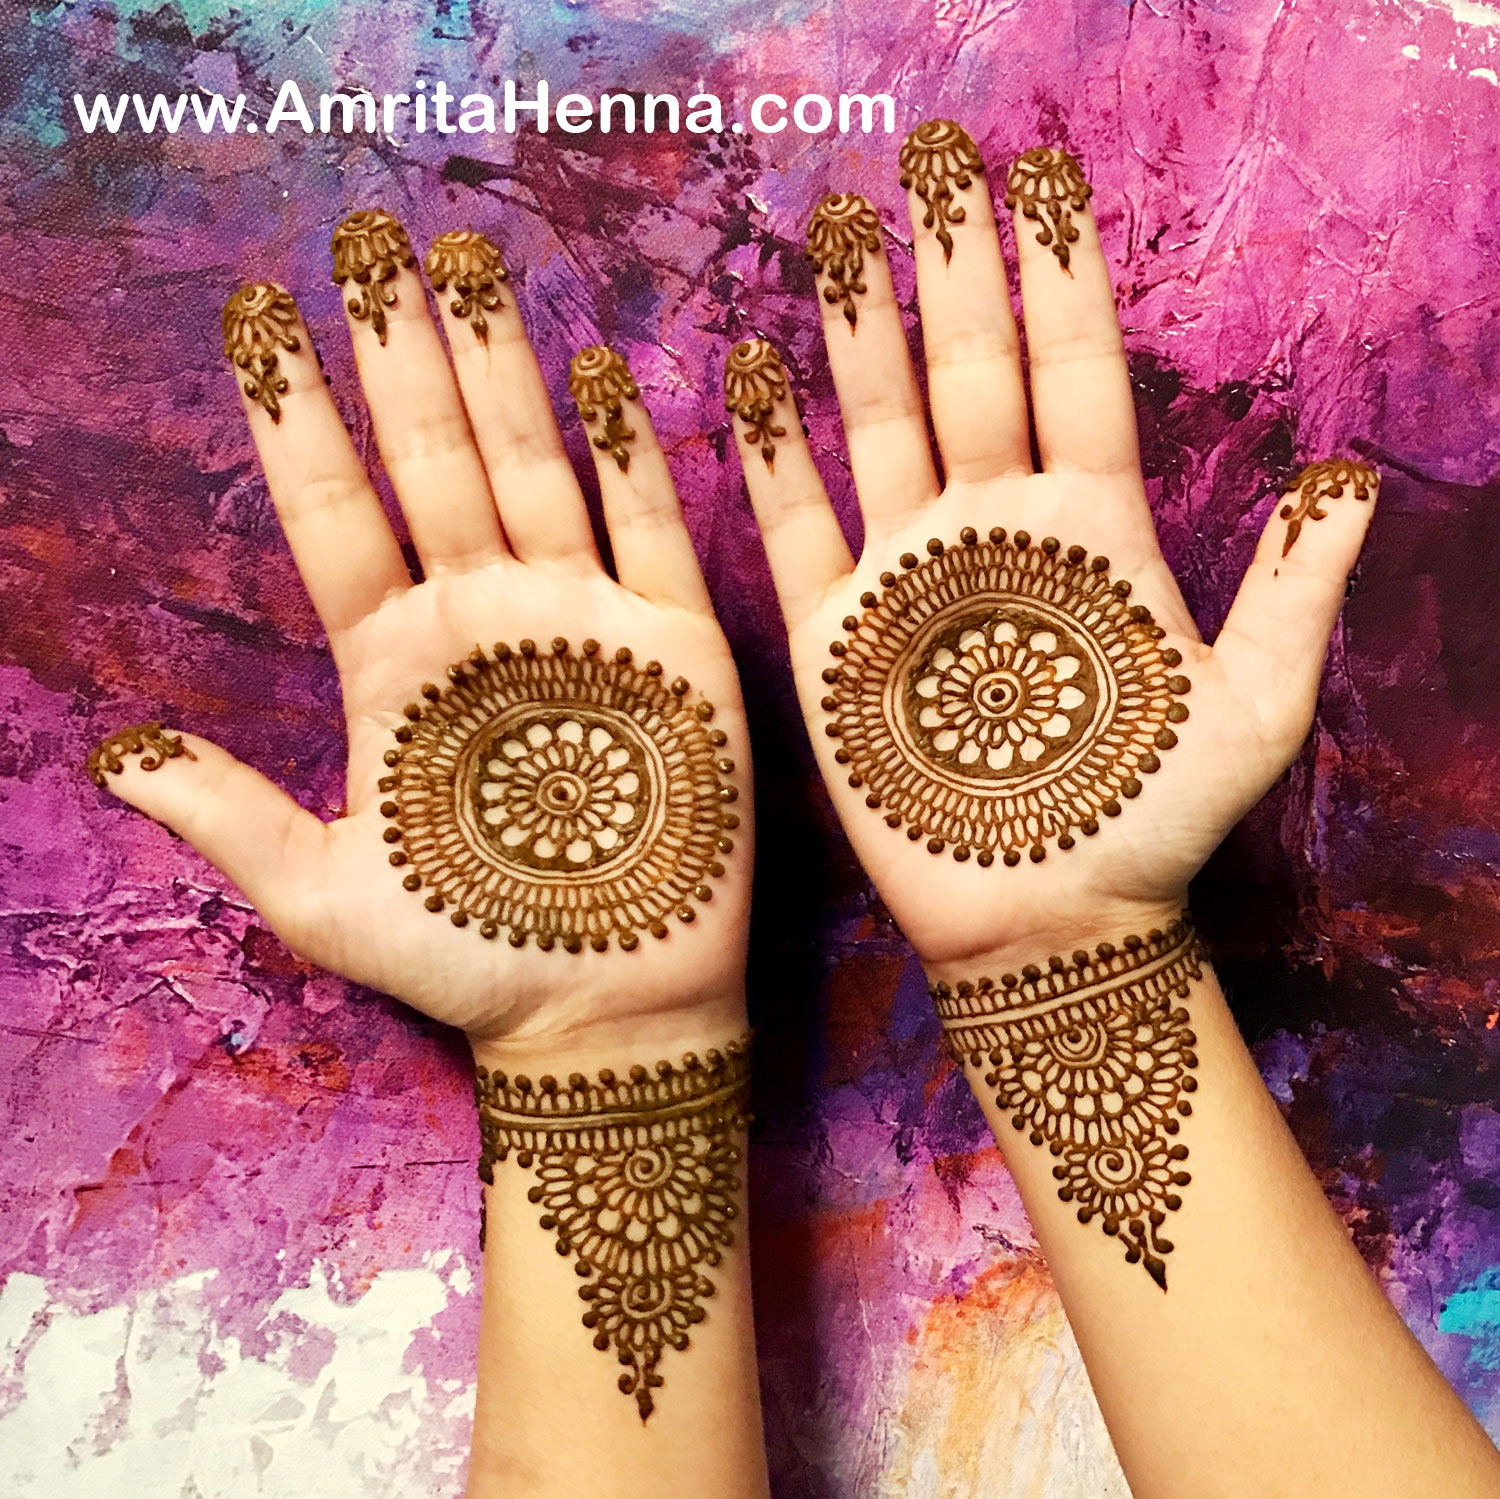 Top 10 Henna Designs for the Mother of the Bride  HENNA TATTOO MEHNDI ART BY AMRITA